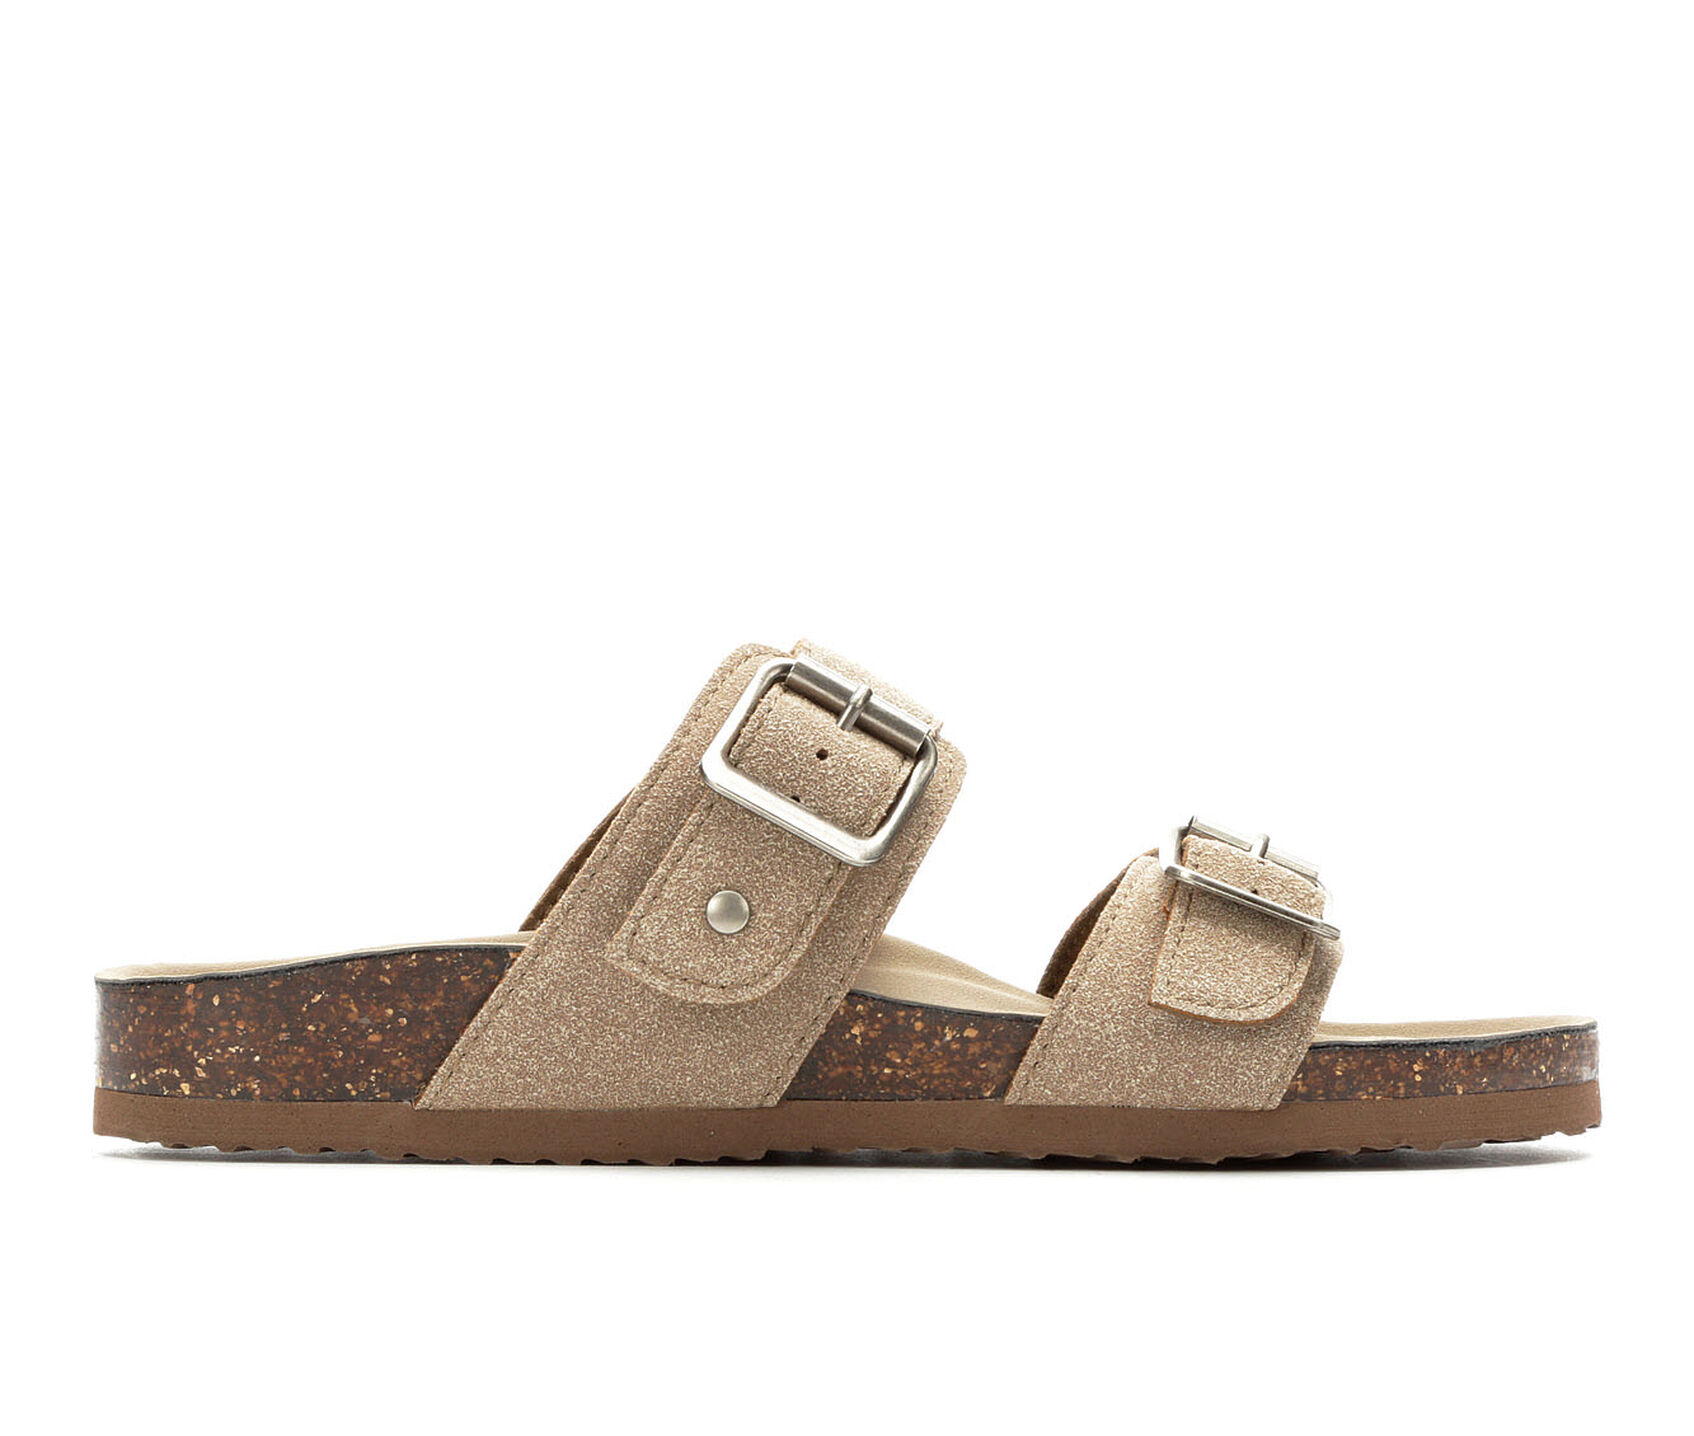 d4a02f56f3be Women s Madden Girl Brando Footbed Sandals